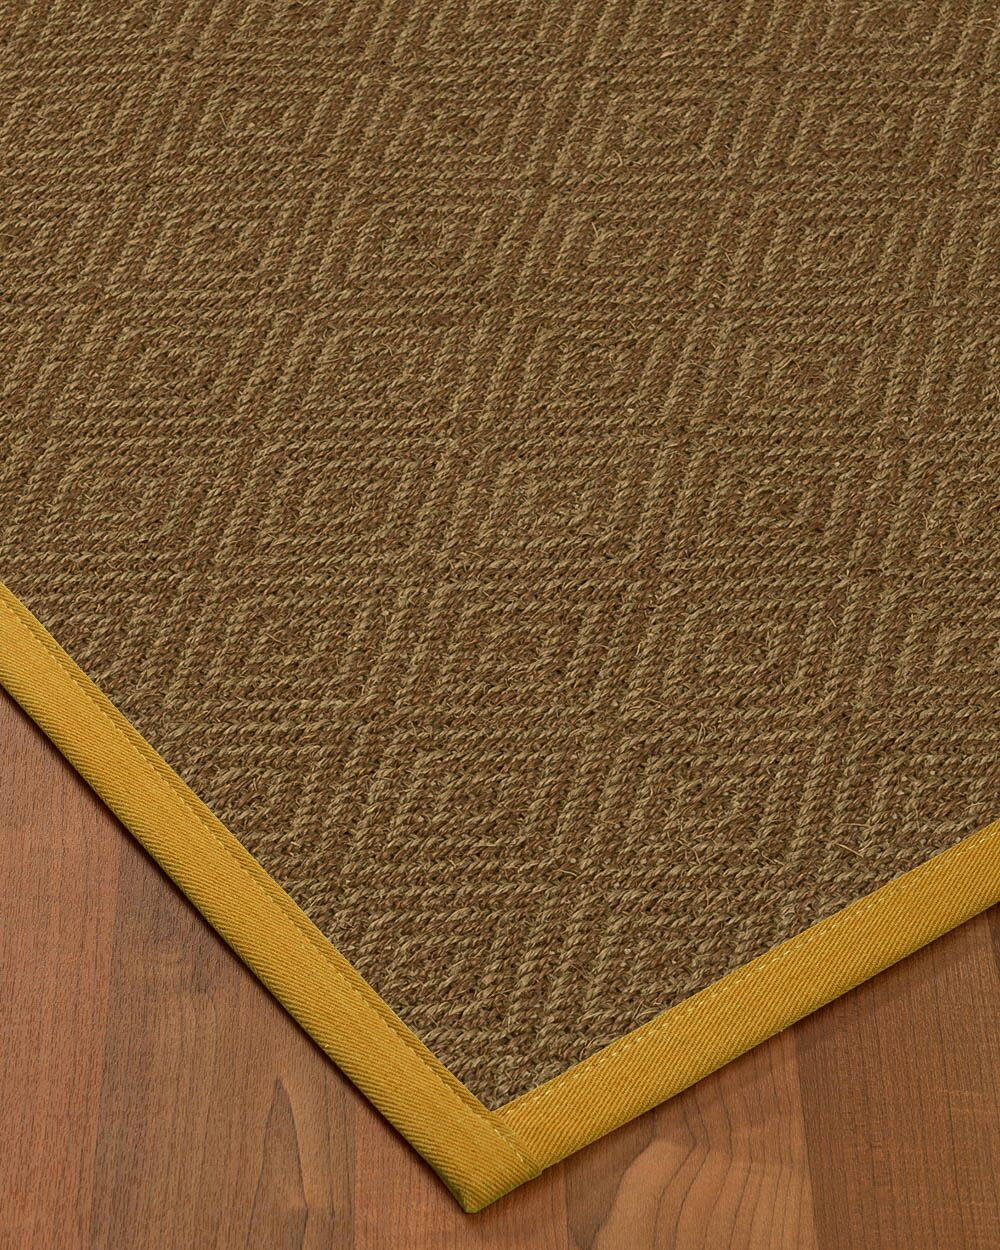 Magnuson Border Hand-Woven Brown/Tan Area Rug Rug Pad Included: No, Rug Size: Runner 2'6